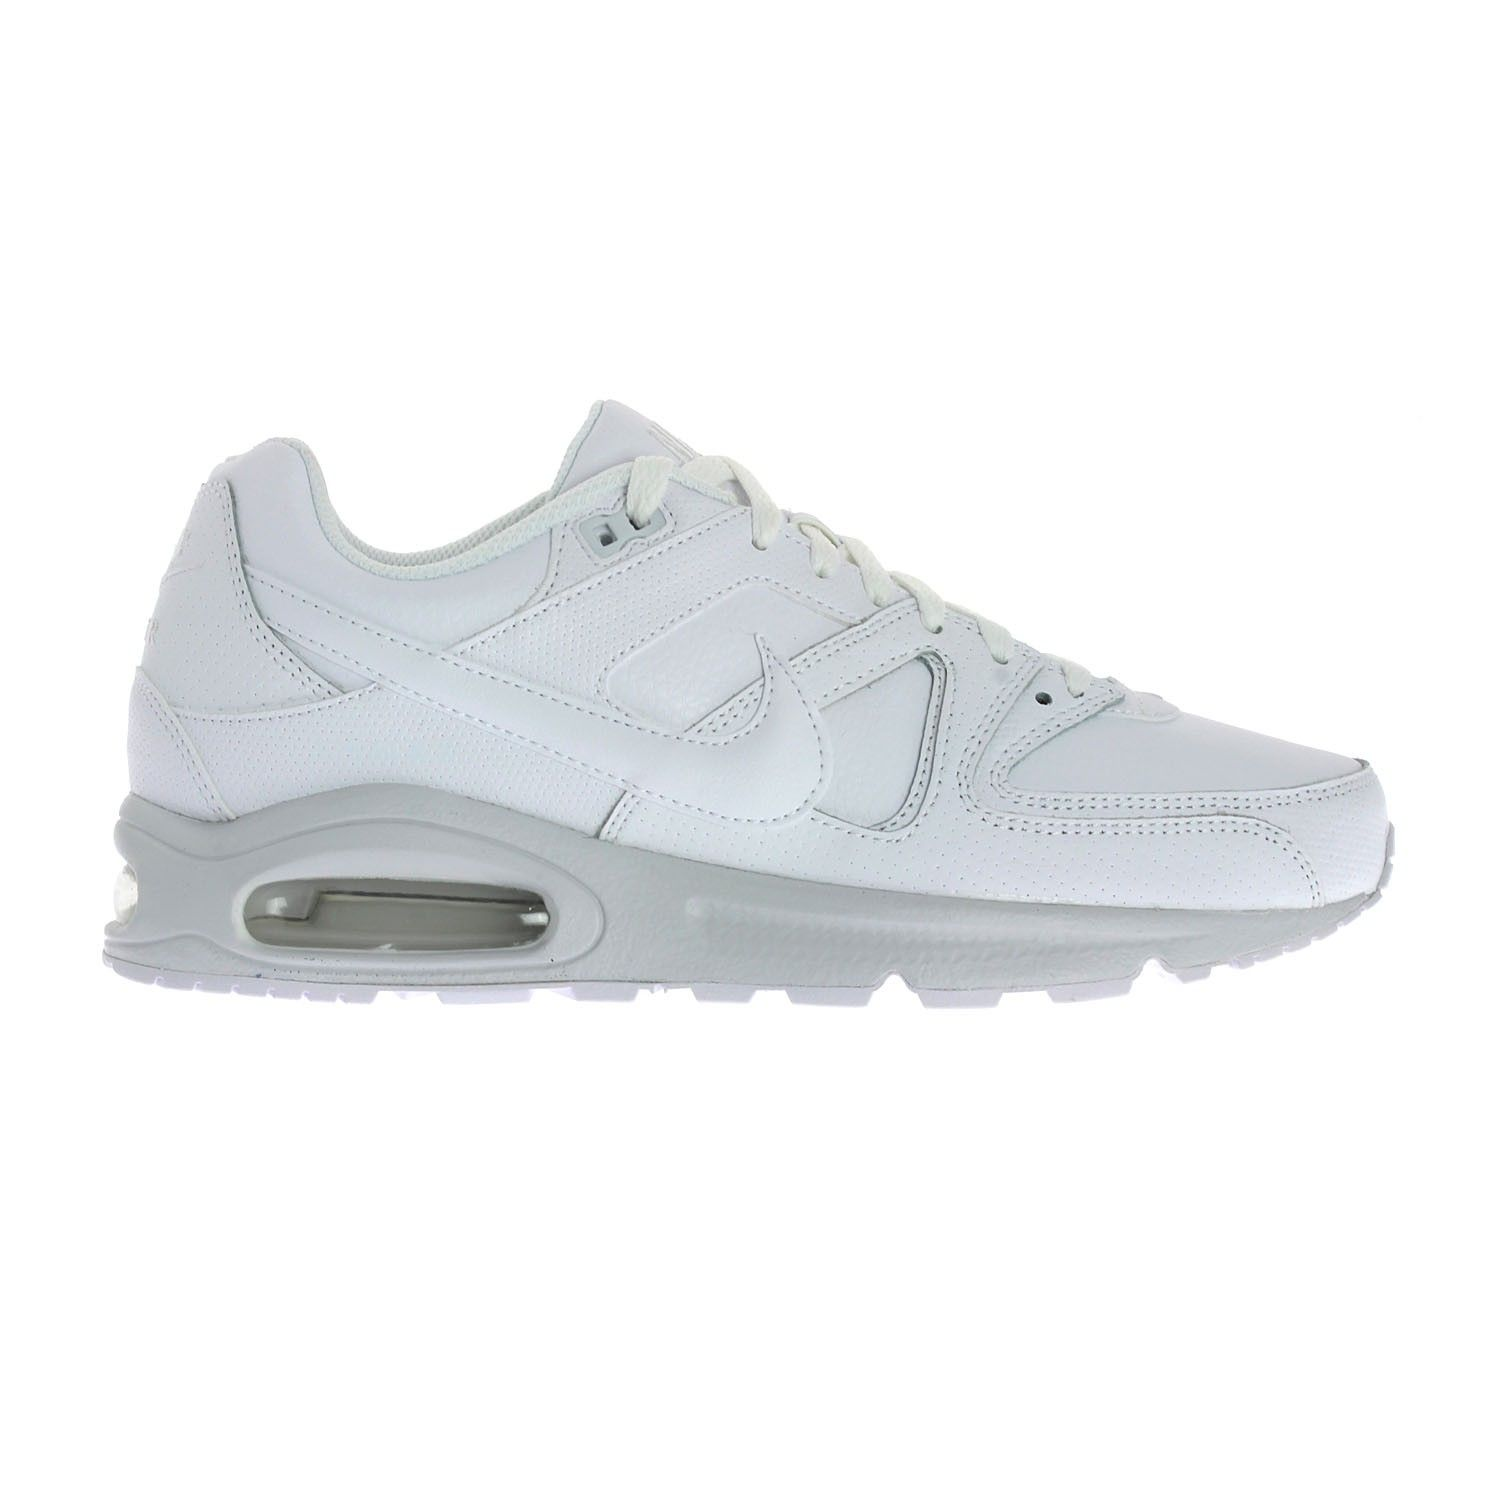 men's nike air max command leather sneakers